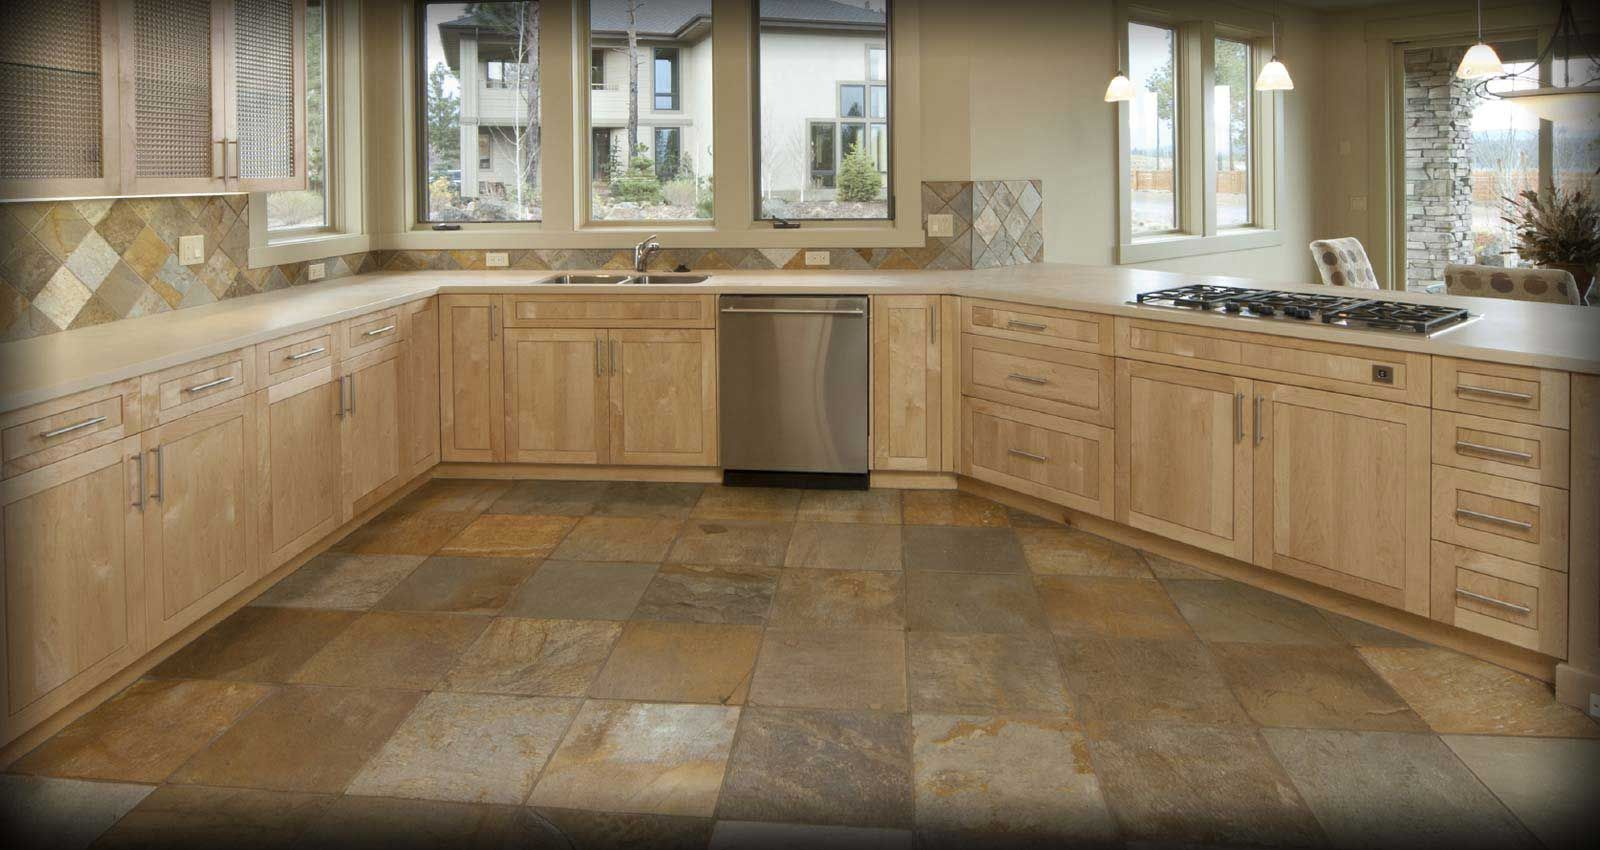 Tiling A Kitchen Floor Kitchen Floor Ideas Full Size Of Tile Pattern Ideas For Kitchen